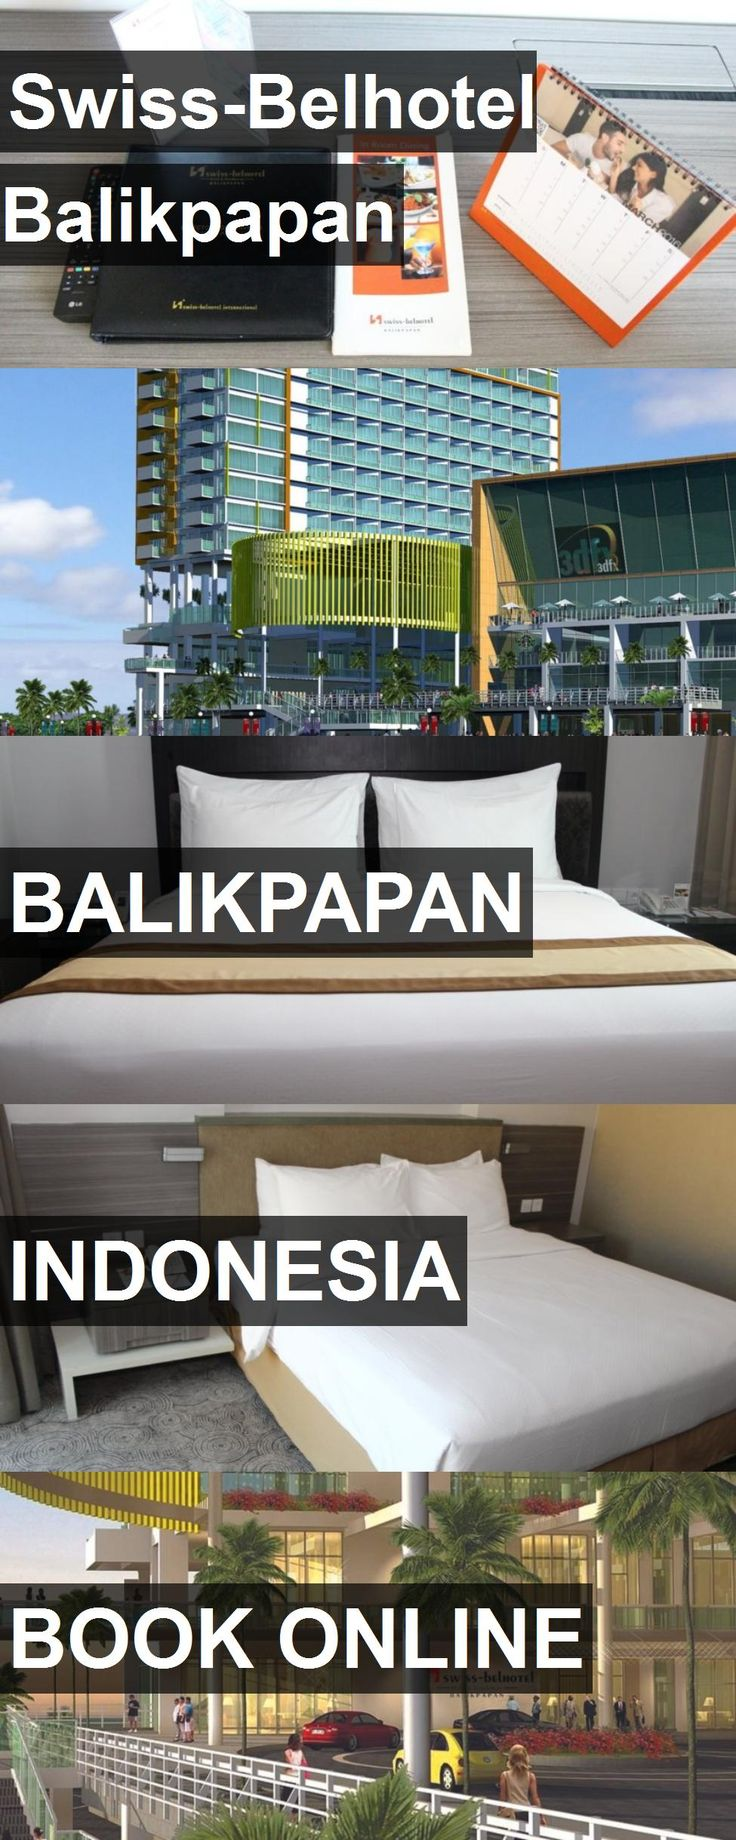 Swiss-Belhotel Balikpapan in Balikpapan, Indonesia. For more information, photos, reviews and best prices please follow the link. #Indonesia #Balikpapan #travel #vacation #hotel